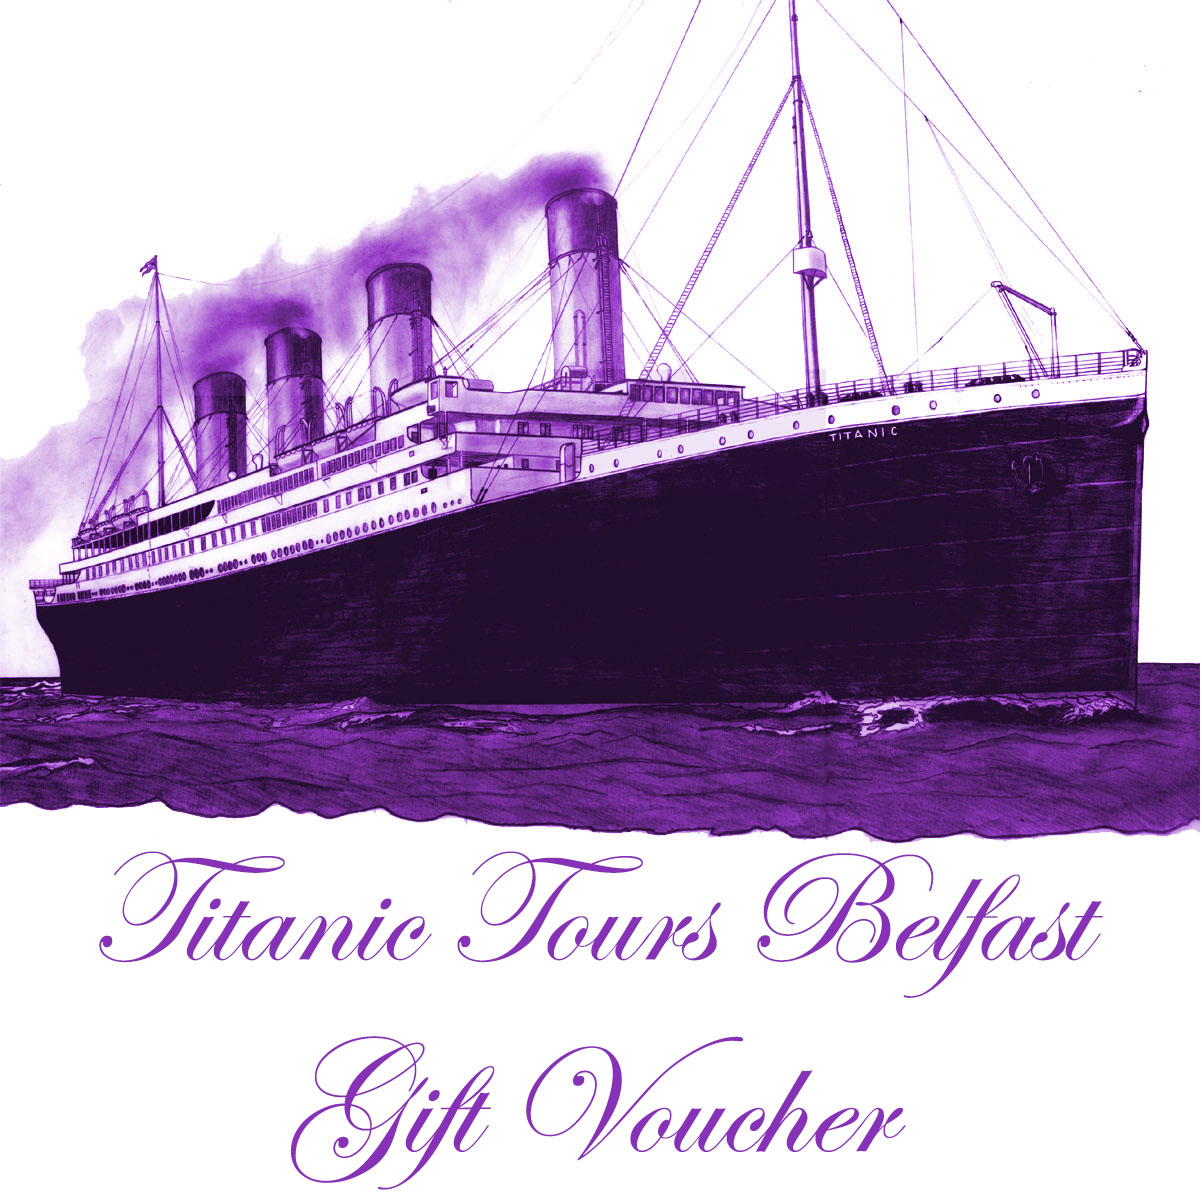 TTB Gift Voucher Logo - Titanic drawing by Michael Lane